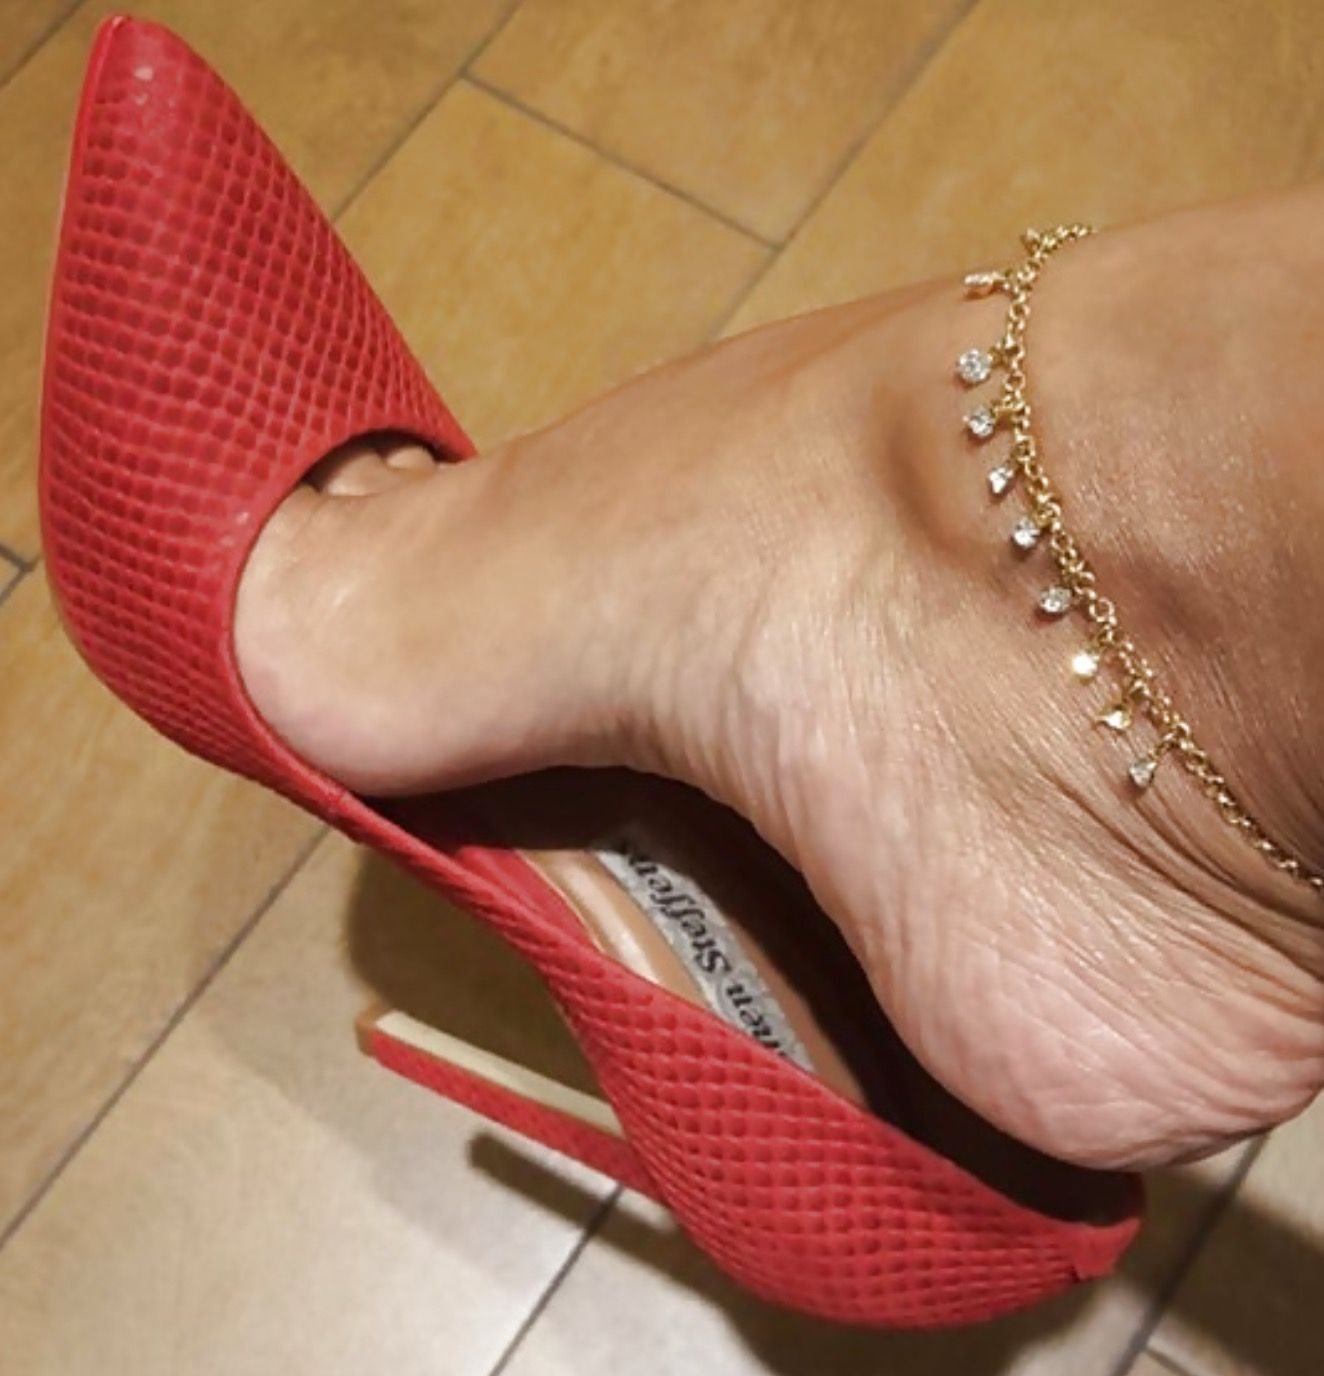 Pin by Thomas Diedrich on Navy | Red pump shoes, Stiletto